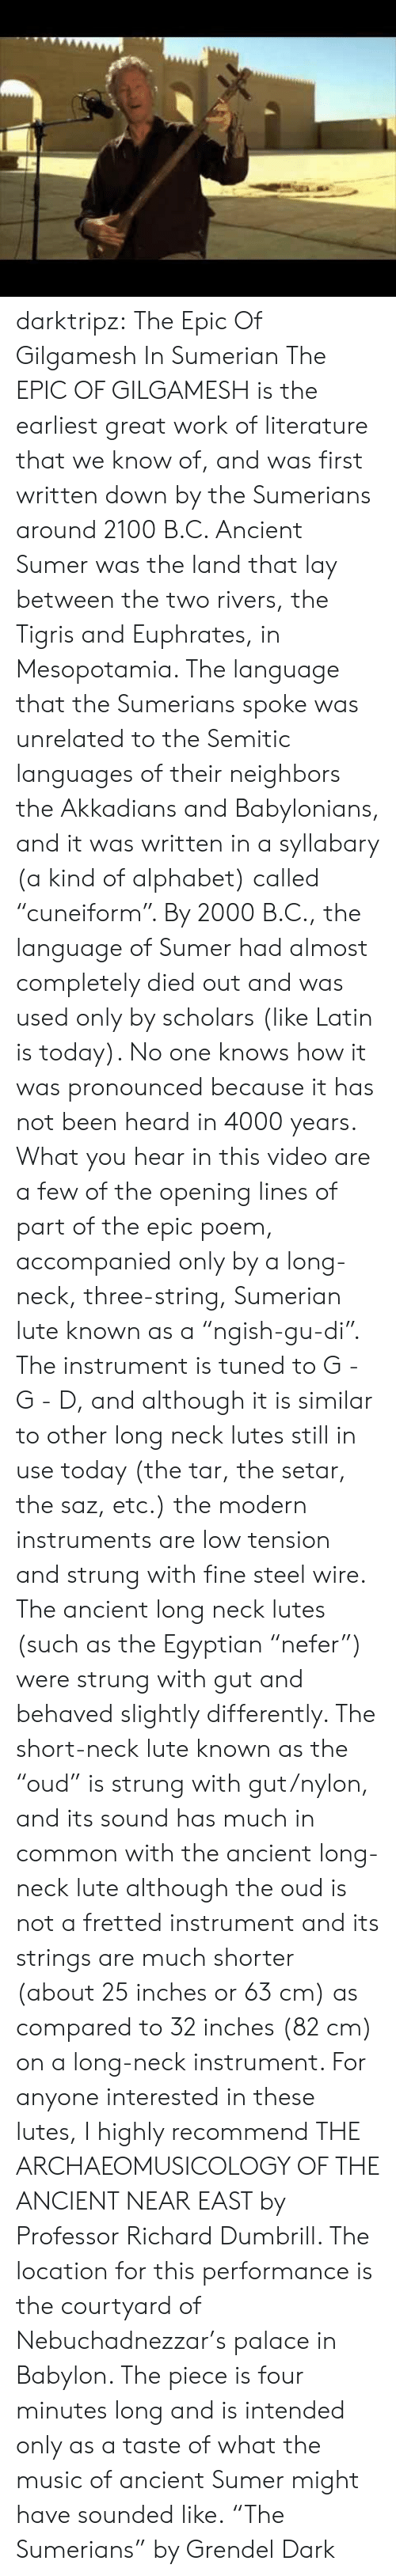 """Music, Tumblr, and Work: darktripz:  The Epic Of Gilgamesh In Sumerian  The EPIC OF GILGAMESH is the earliest great work of literature that we know of, and was first written down by the Sumerians around 2100 B.C.   Ancient Sumer was the land that lay between the two rivers, the Tigris and Euphrates, in Mesopotamia. The language that the Sumerians spoke was unrelated to the Semitic languages of their neighbors the Akkadians and Babylonians, and it was written in a syllabary (a kind of alphabet) called """"cuneiform"""". By 2000 B.C., the language of Sumer had almost completely died out and was used only by scholars (like Latin is today). No one knows how it was pronounced because it has not been heard in 4000 years.  What you hear in this video are a few of the opening lines of part of the epic poem, accompanied only by a long-neck, three-string, Sumerian lute known as a """"ngish-gu-di"""". The instrument is tuned to G - G - D, and although it is similar to other long neck lutes still in use today (the tar, the setar, the saz, etc.) the modern instruments are low tension and strung with fine steel wire. The ancient long neck lutes (such as the Egyptian """"nefer"""") were strung with gut and behaved slightly differently. The short-neck lute known as the """"oud"""" is strung with gut/nylon, and its sound has much in common with the ancient long-neck lute although the oud is not a fretted instrument and its strings are much shorter (about 25 inches or 63 cm) as compared to 32 inches (82 cm) on a long-neck instrument.   For anyone interested in these lutes, I highly recommend THE ARCHAEOMUSICOLOGY OF THE ANCIENT NEAR EAST by Professor Richard Dumbrill.   The location for this performance is the courtyard of Nebuchadnezzar's palace in Babylon. The piece is four minutes long and is intended only as a taste of what the music of ancient Sumer might have sounded like.  """"The Sumerians"""" by Grendel Dark"""